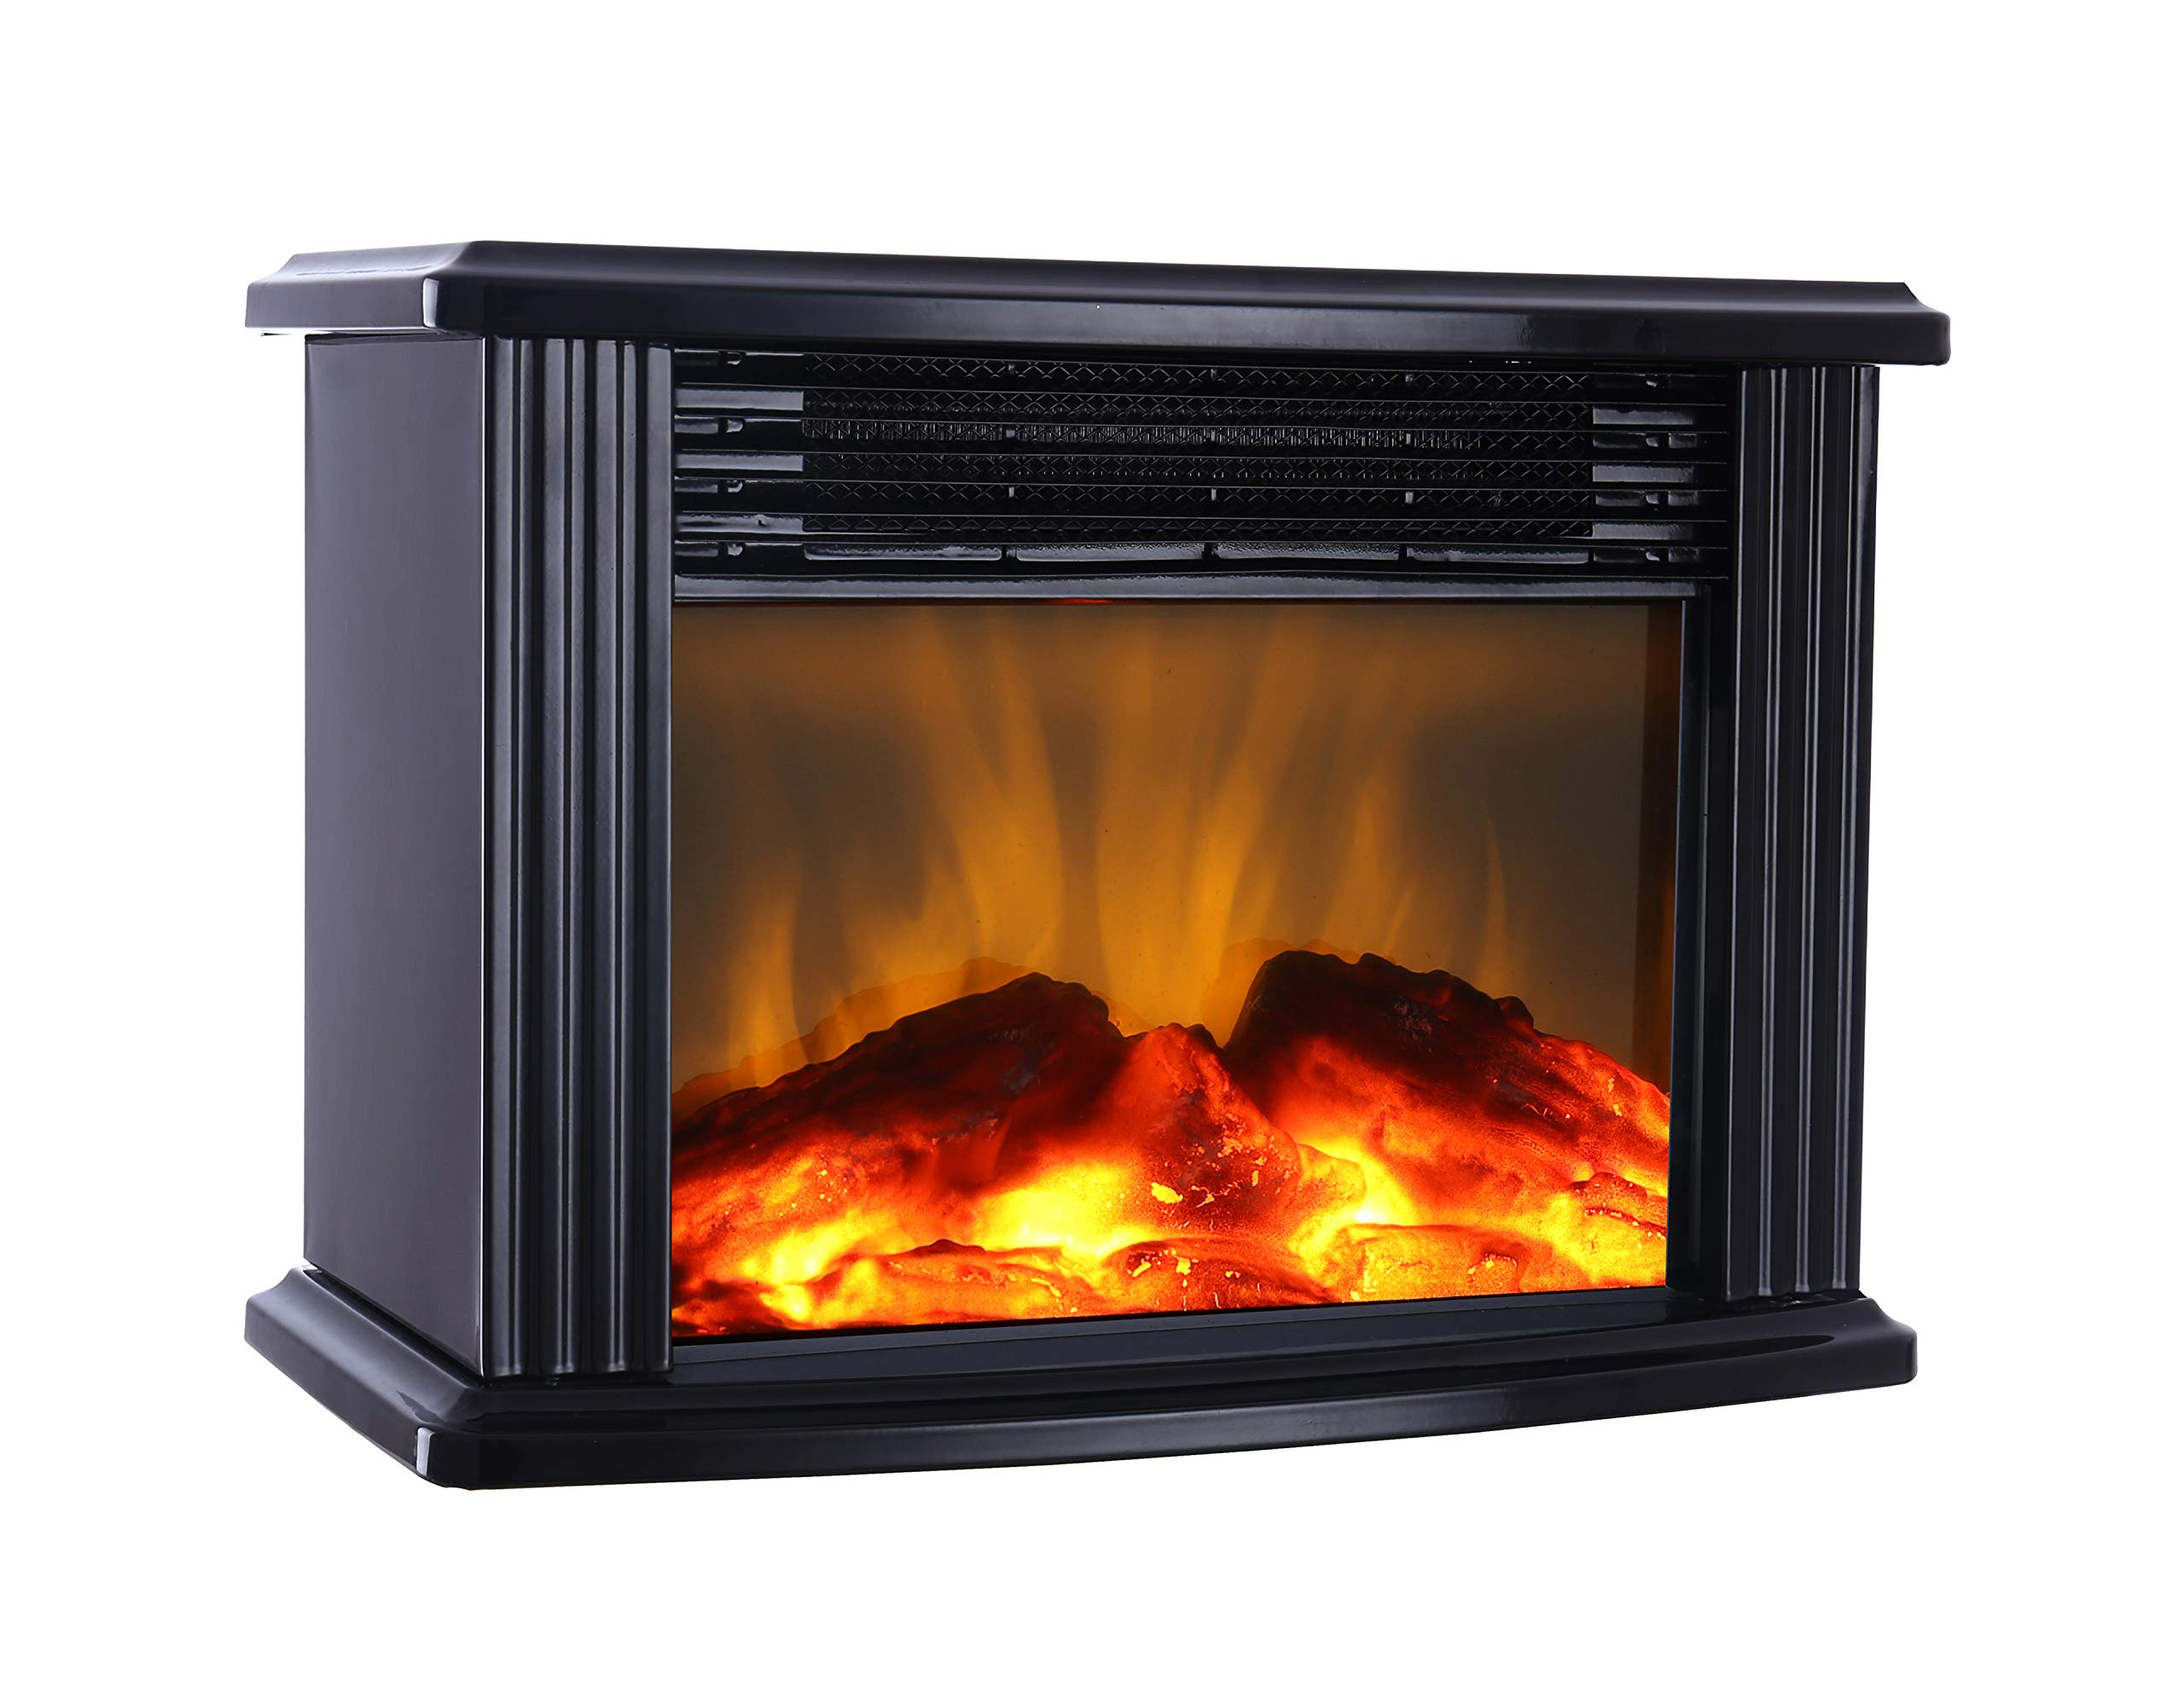 DONYER POWER 14'' Width Mini Electric Fireplace Tabletop Portable Heater, 1500W, Black Metal Frame,Room Heater,Space Heater by DONYER POWER